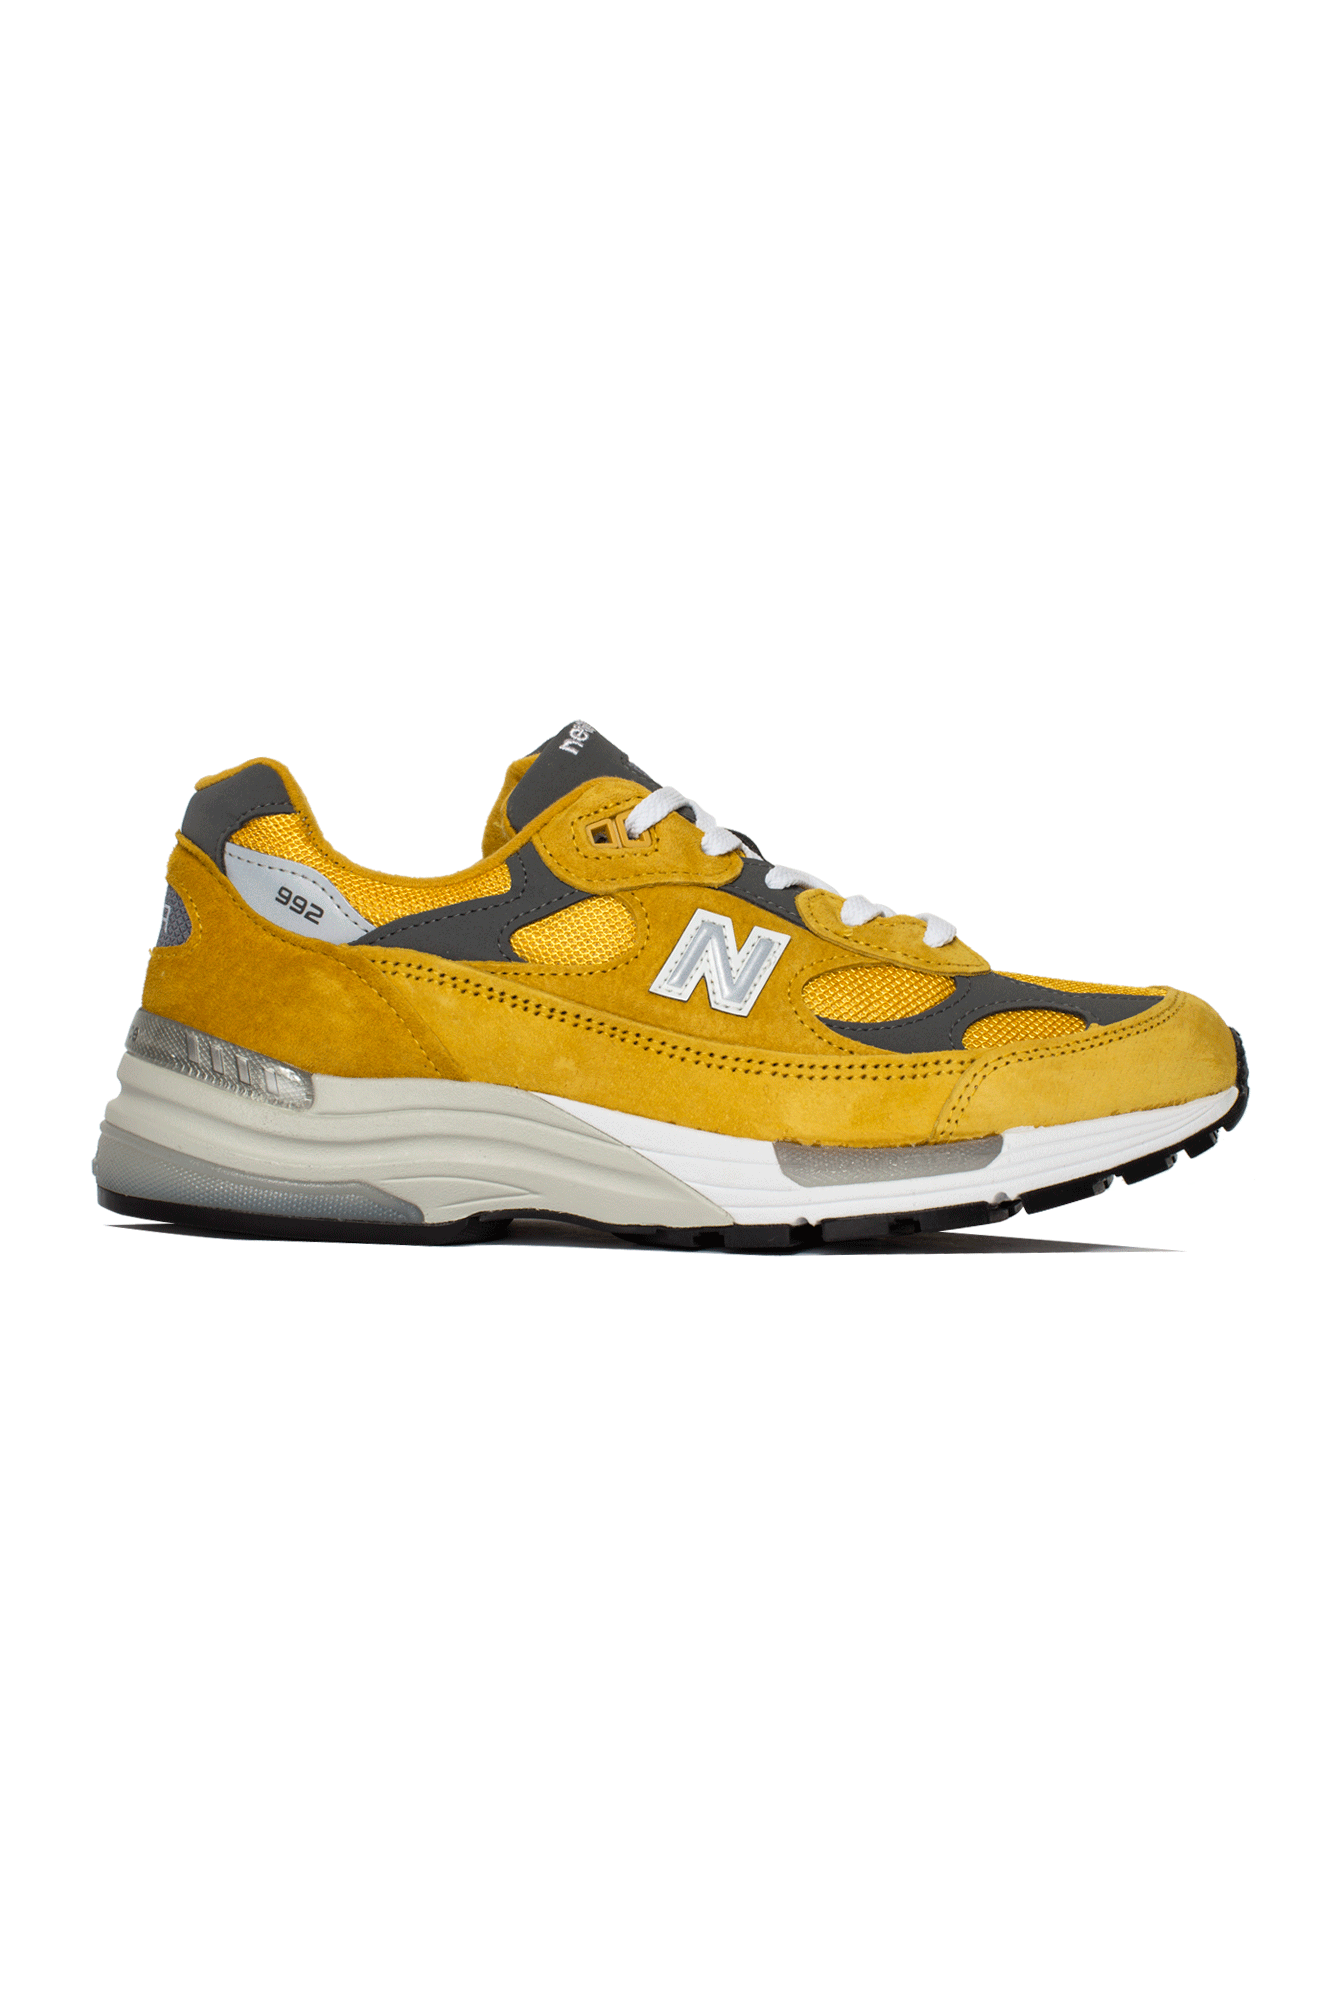 New Balance Sneakers 992 Giallo M992#000#BB#8 - One Block Down